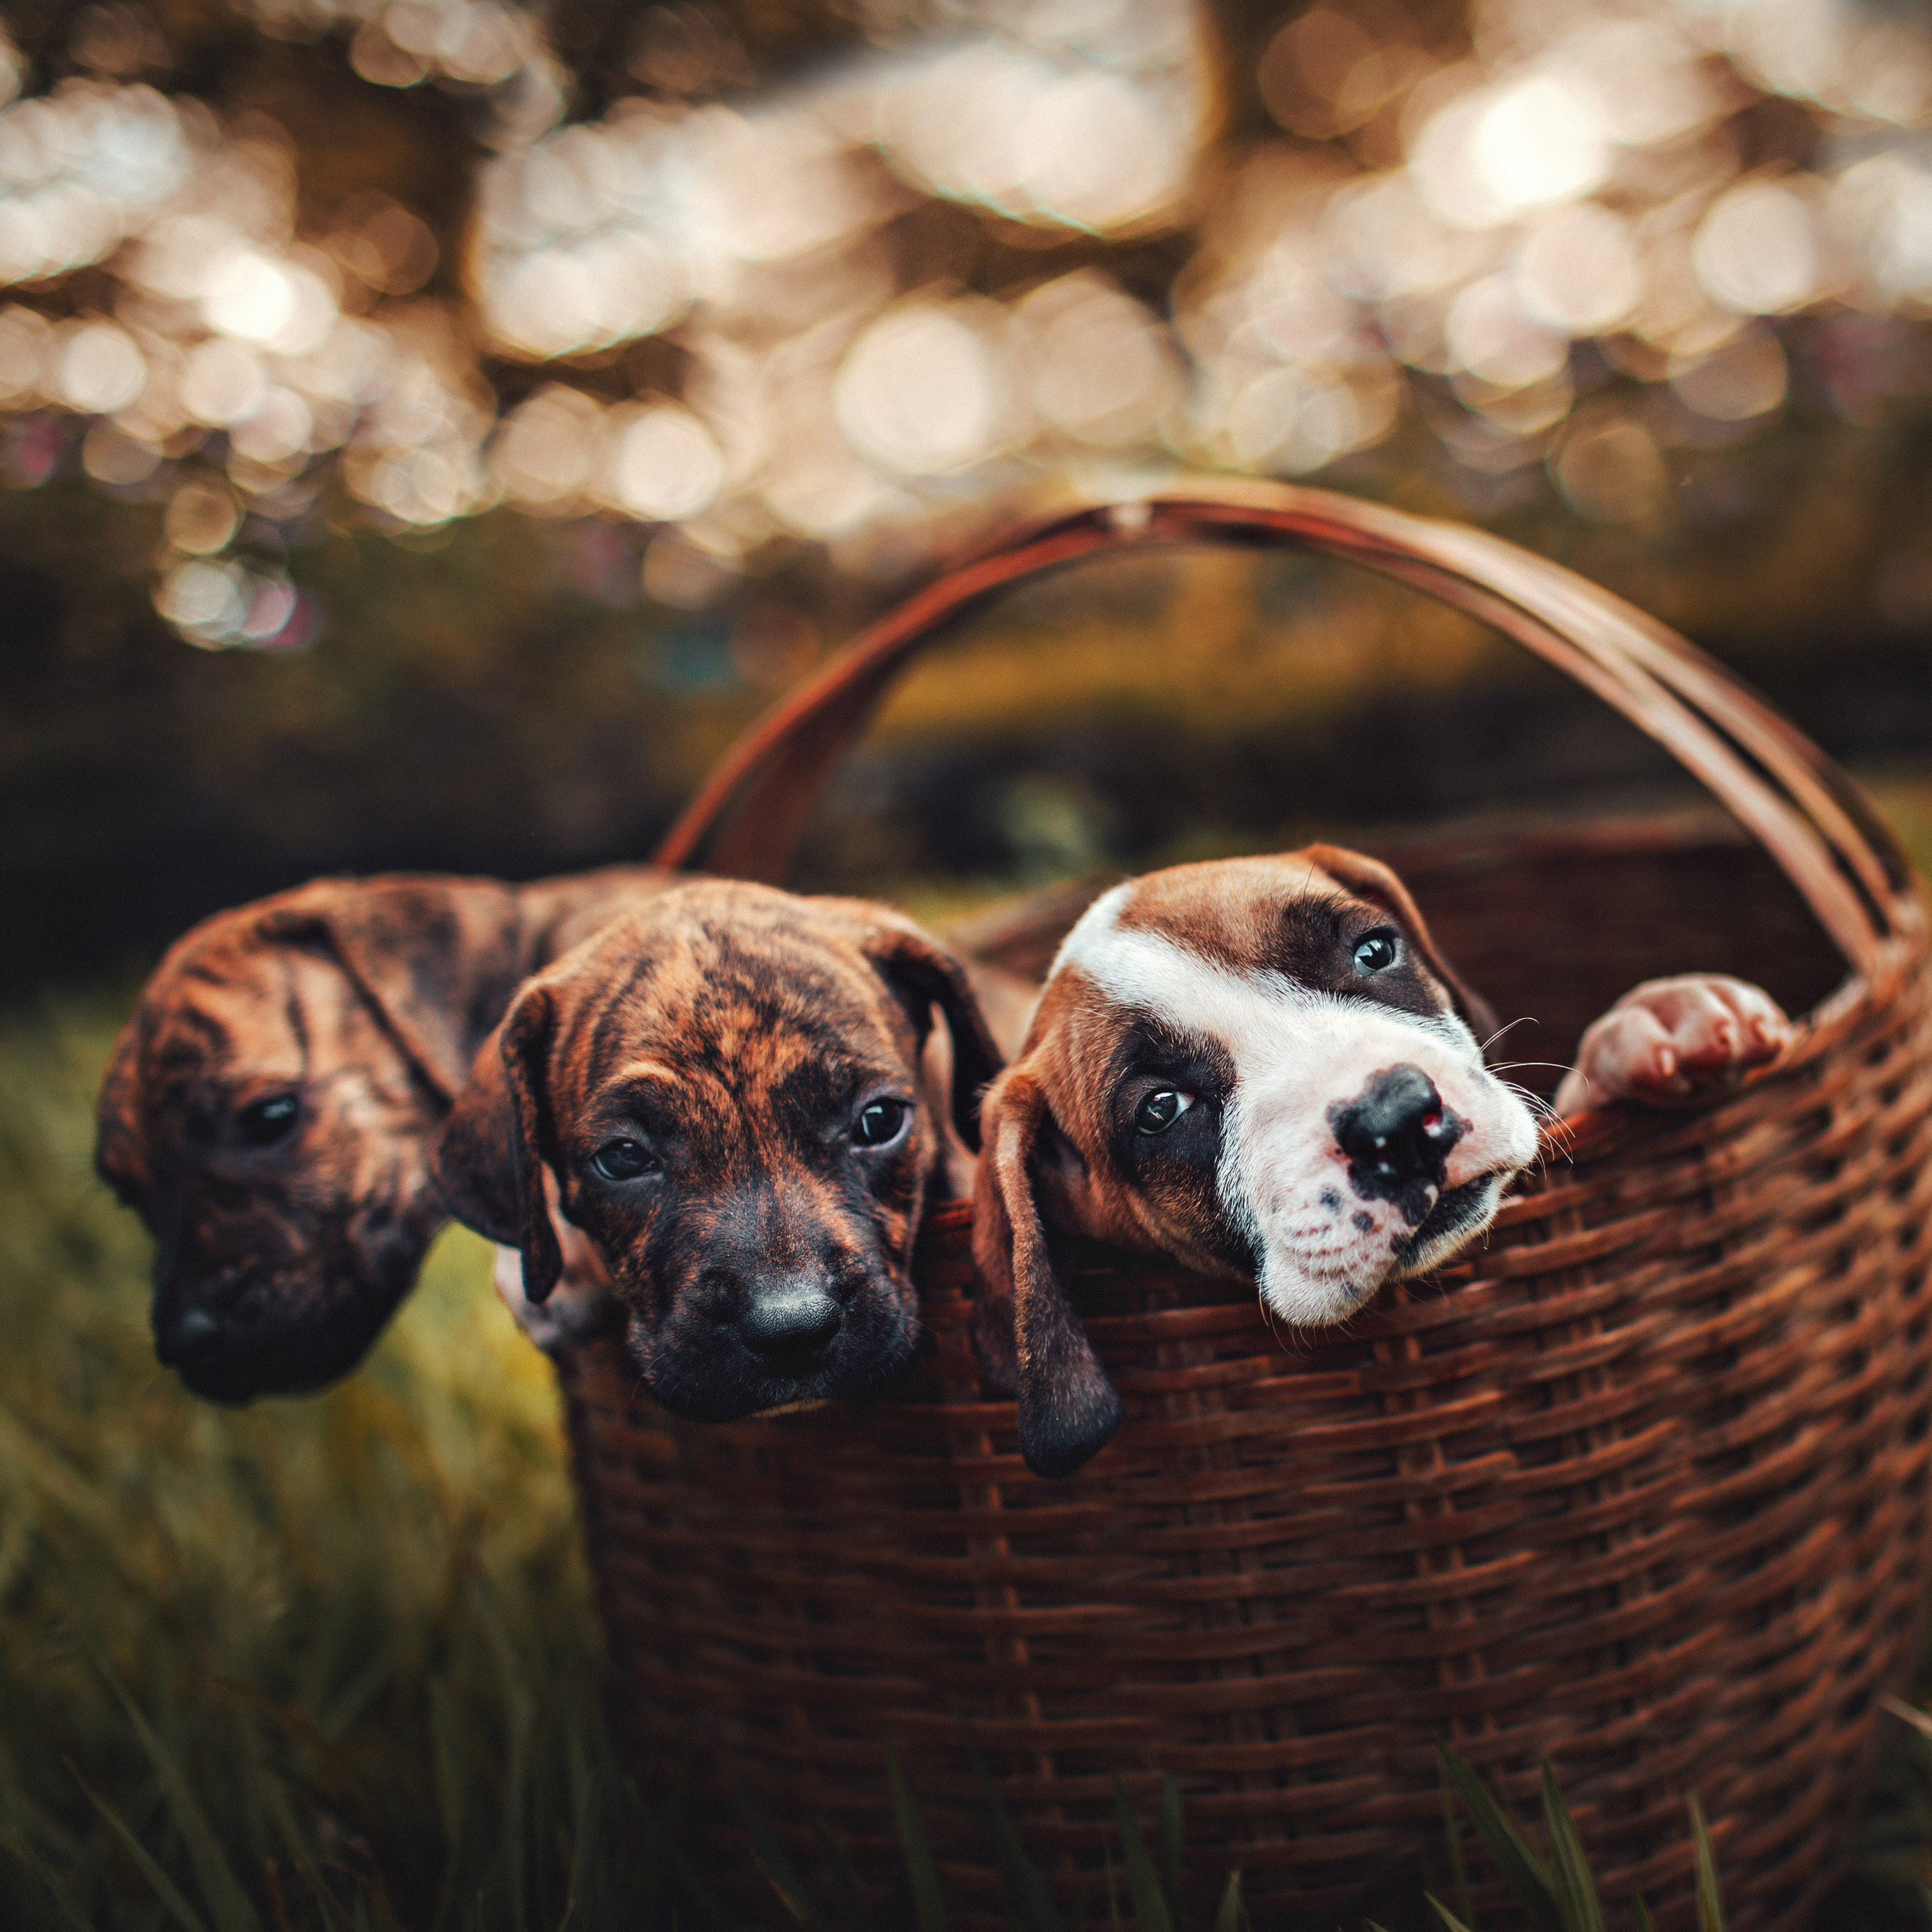 Papers Co Android Wallpaper Oc00 Dog Animal Cute Nature